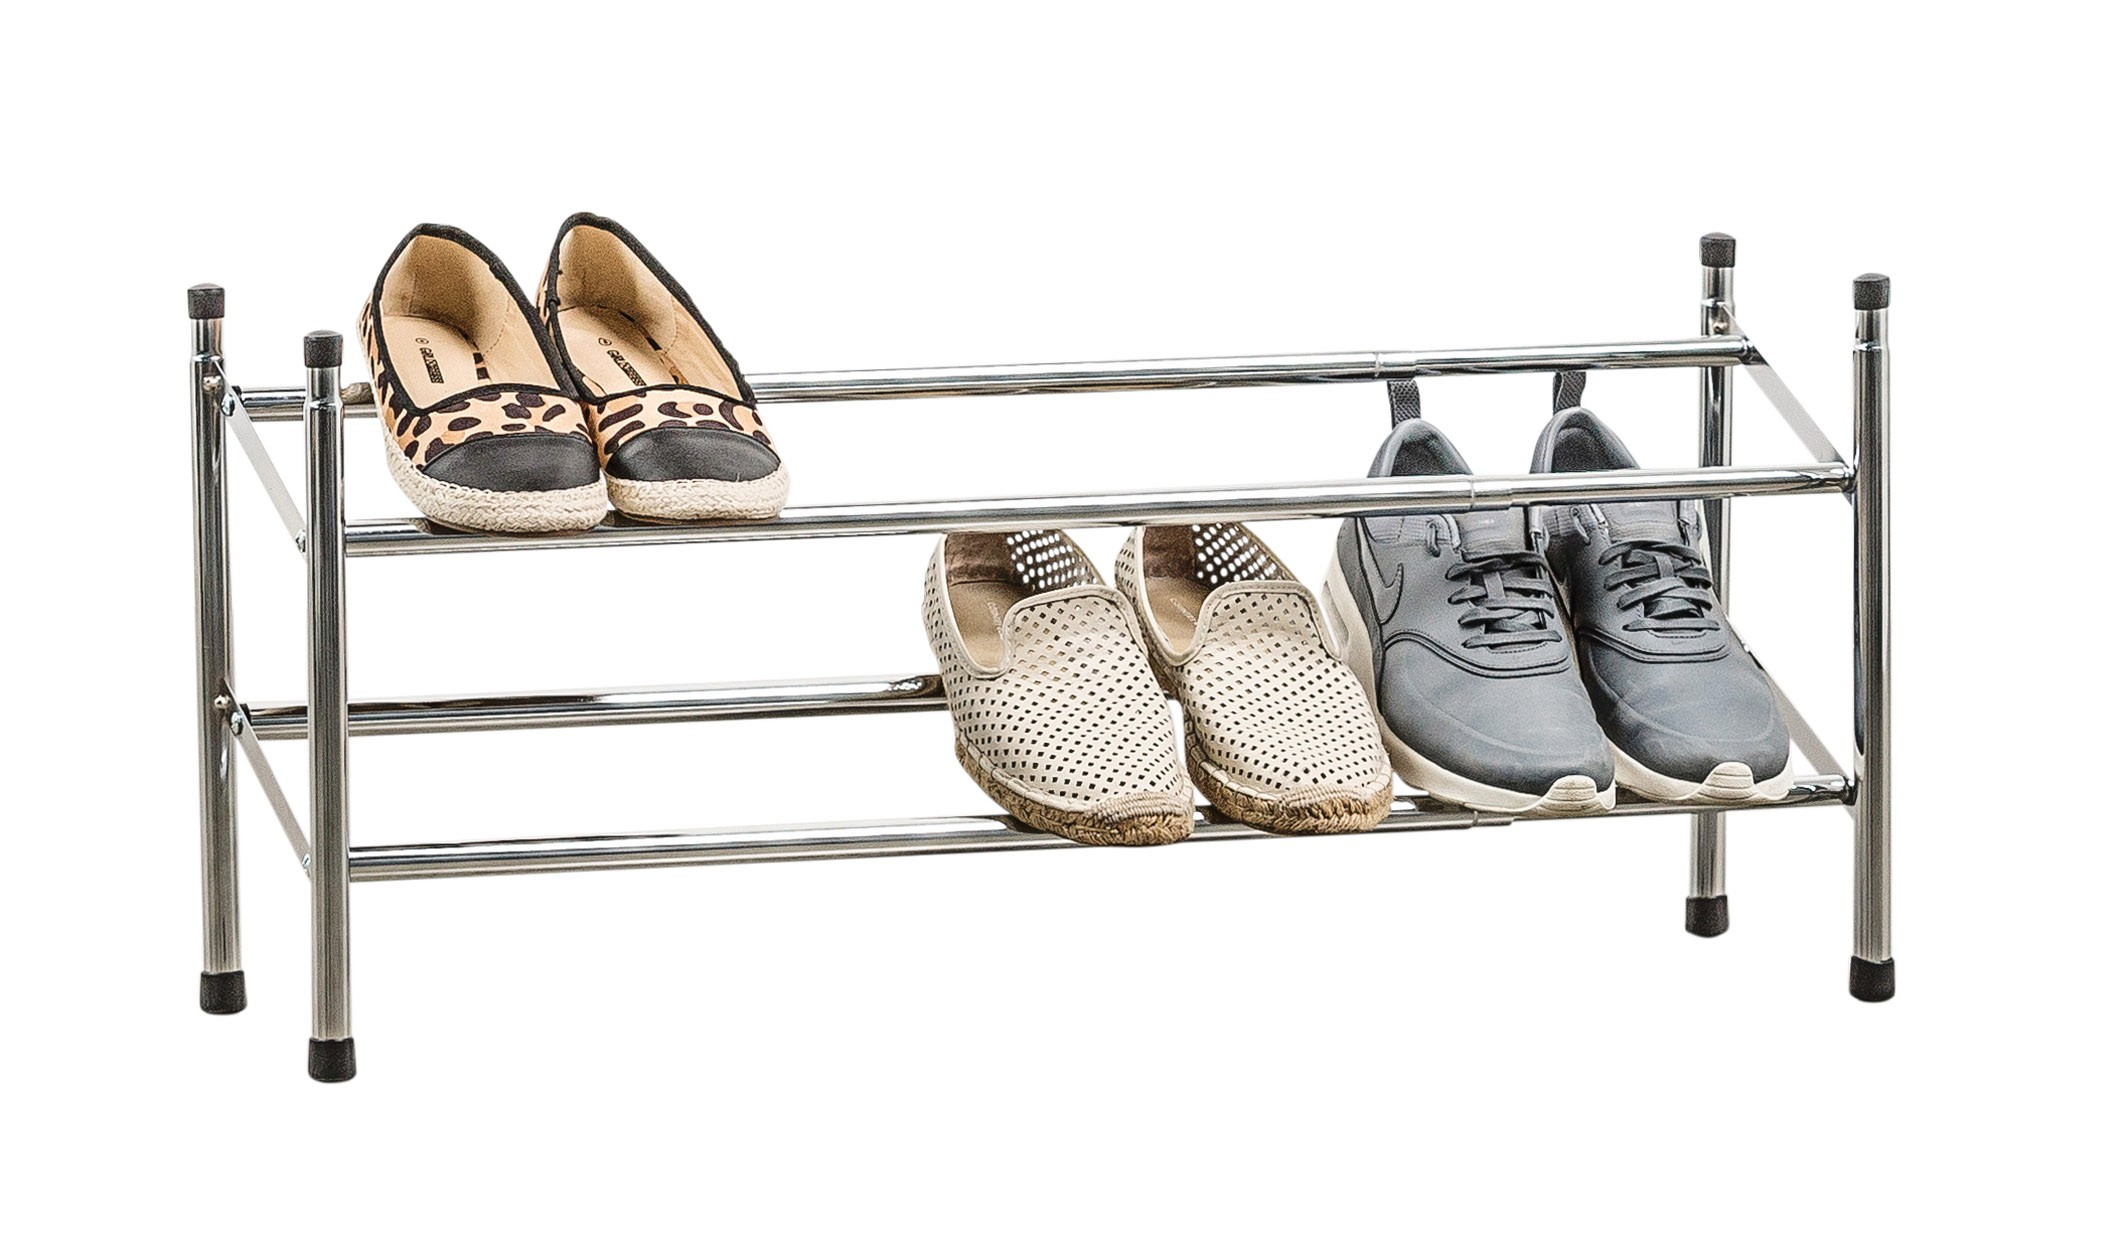 Shoe Rack 2 Tier Chrome Expanding From Storage Box